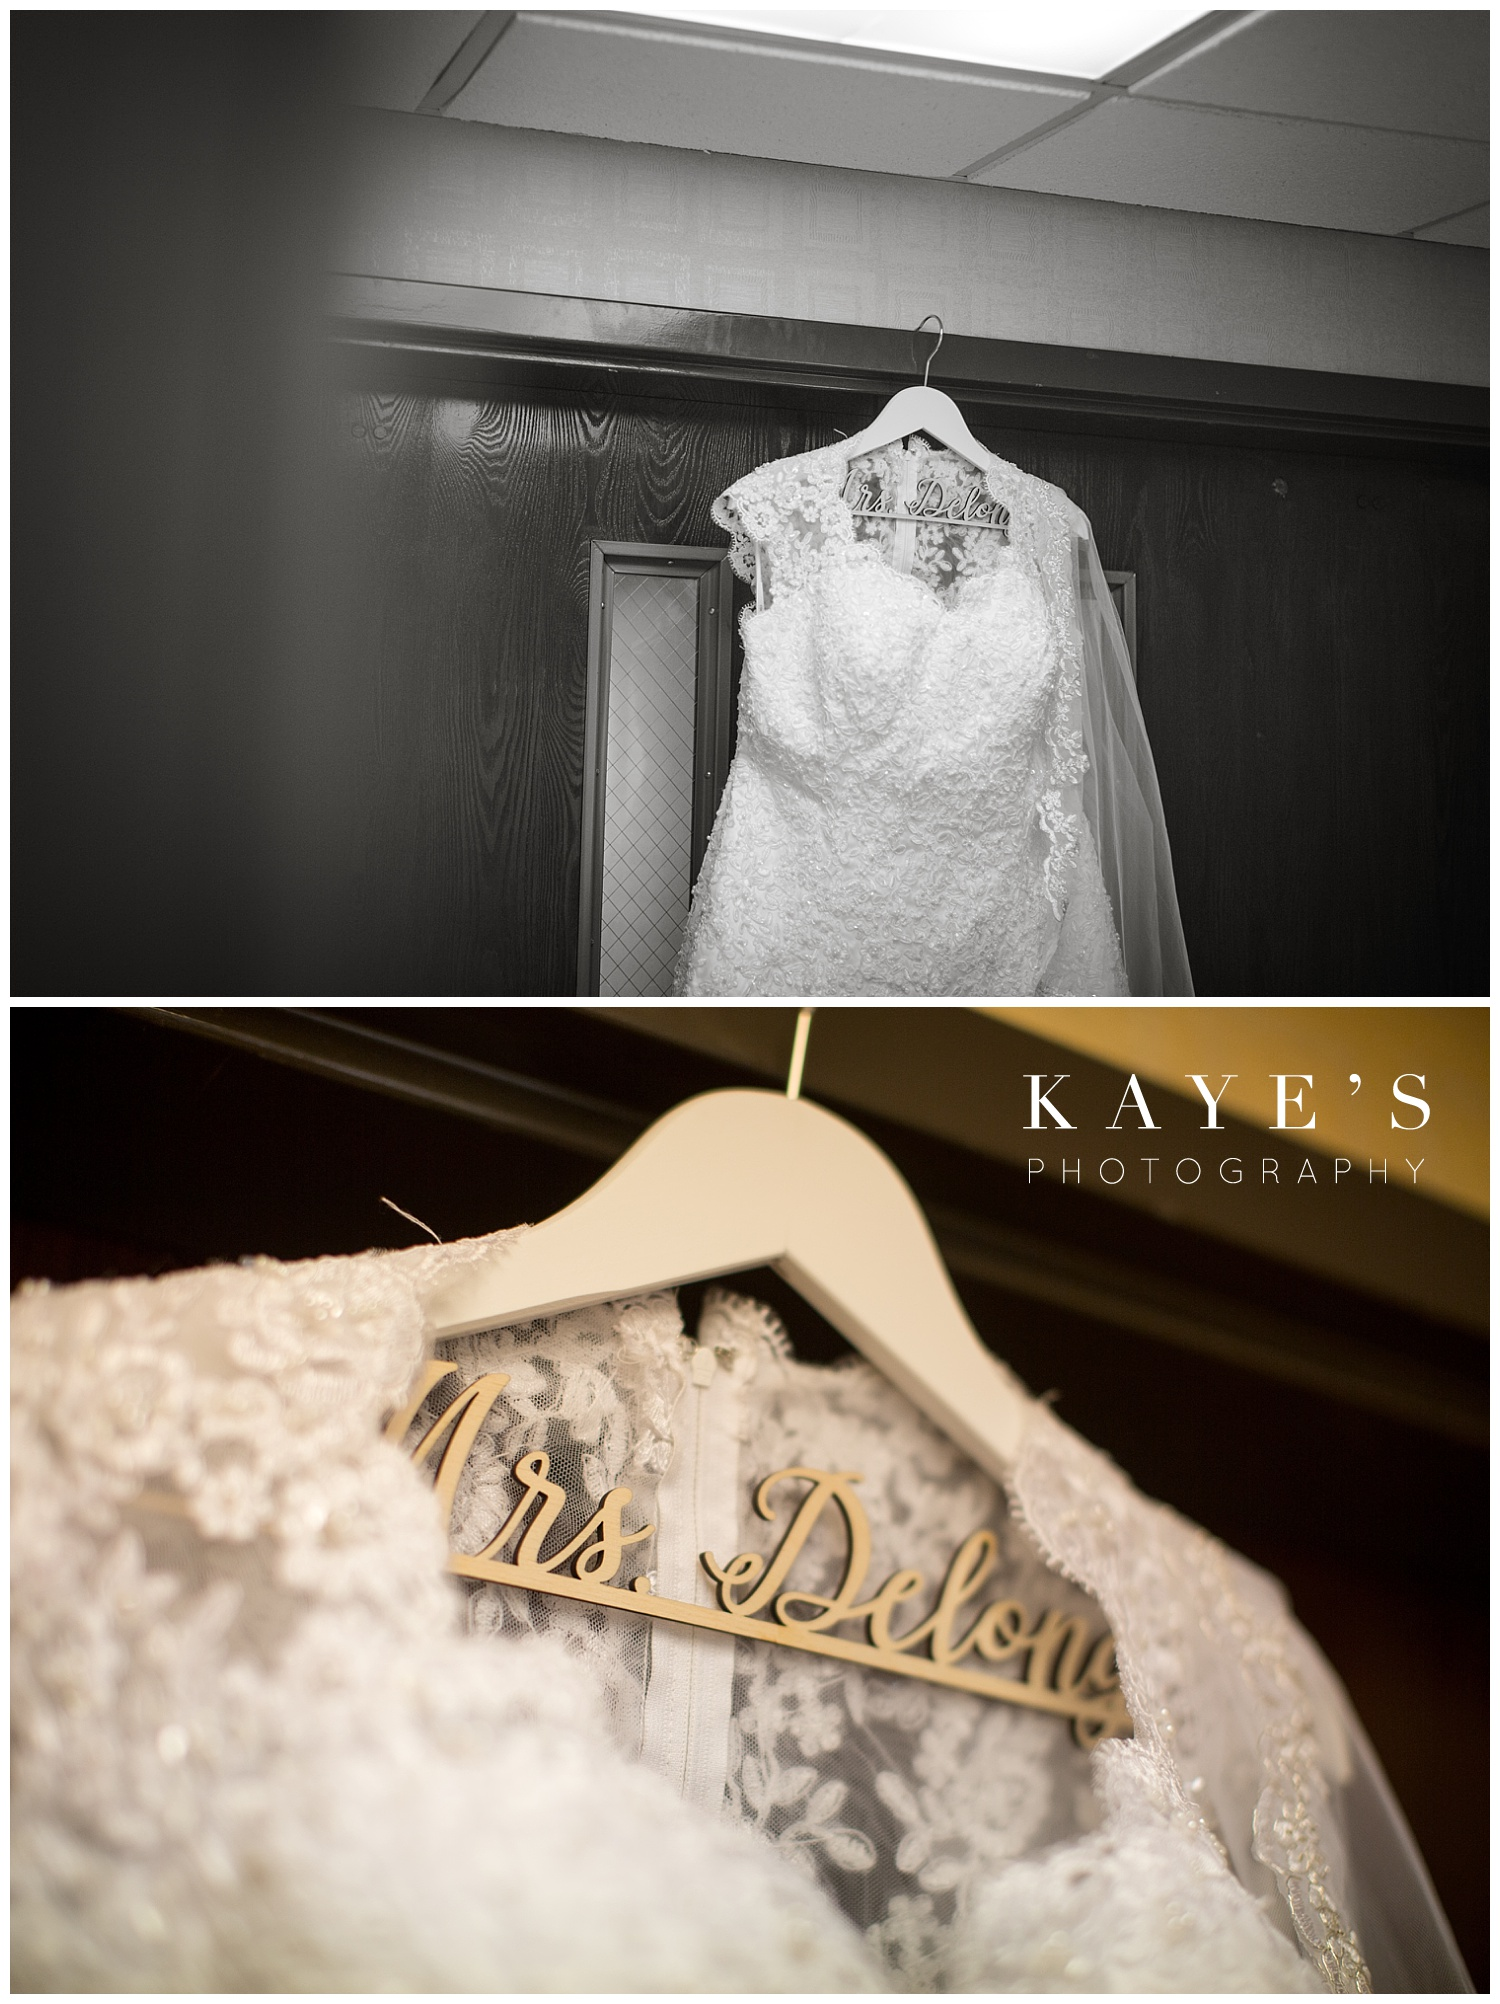 brides dress hanging before davison michigan wedding by kaye's photography